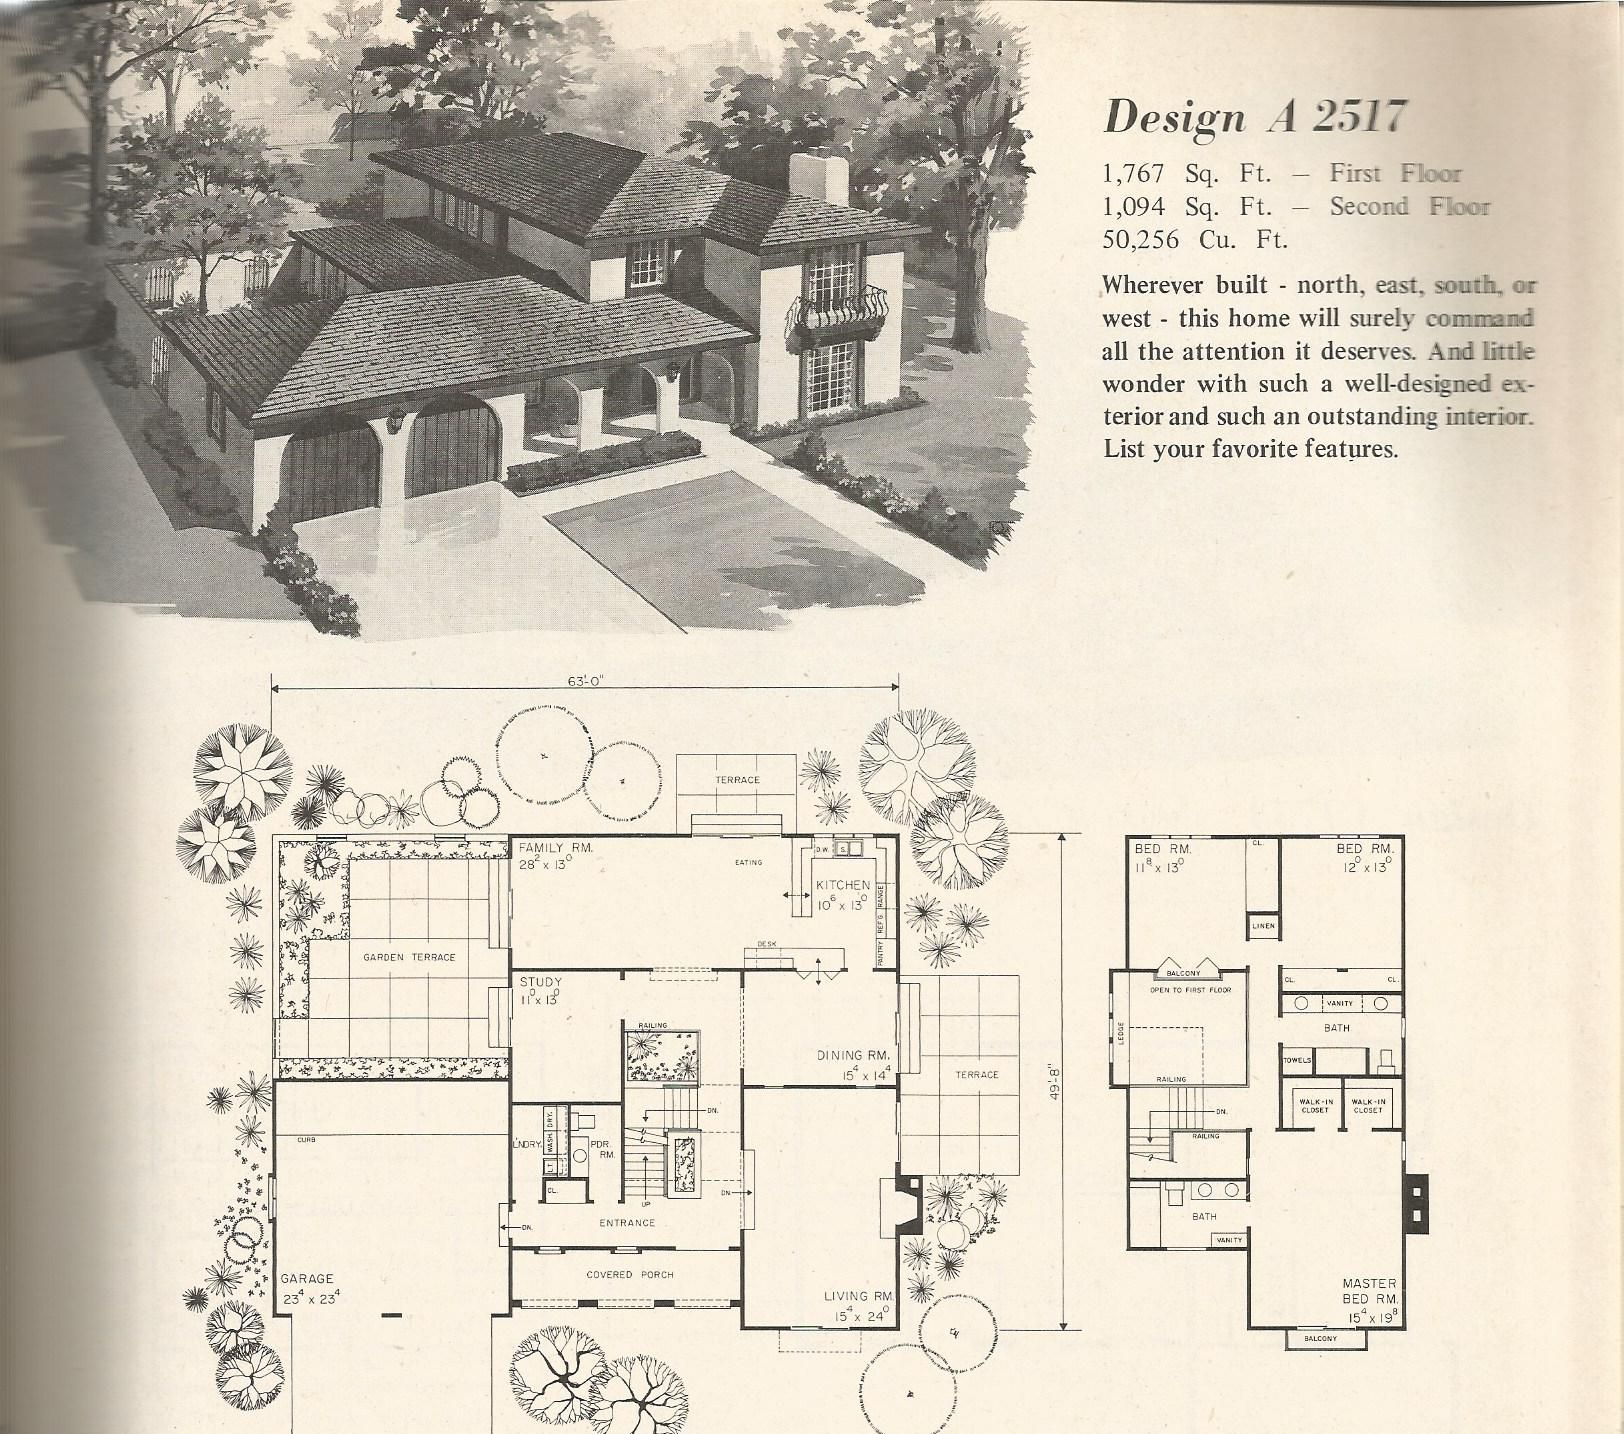 vintage house plans, mid century homes, 1960s homes | 40s 50s 60s